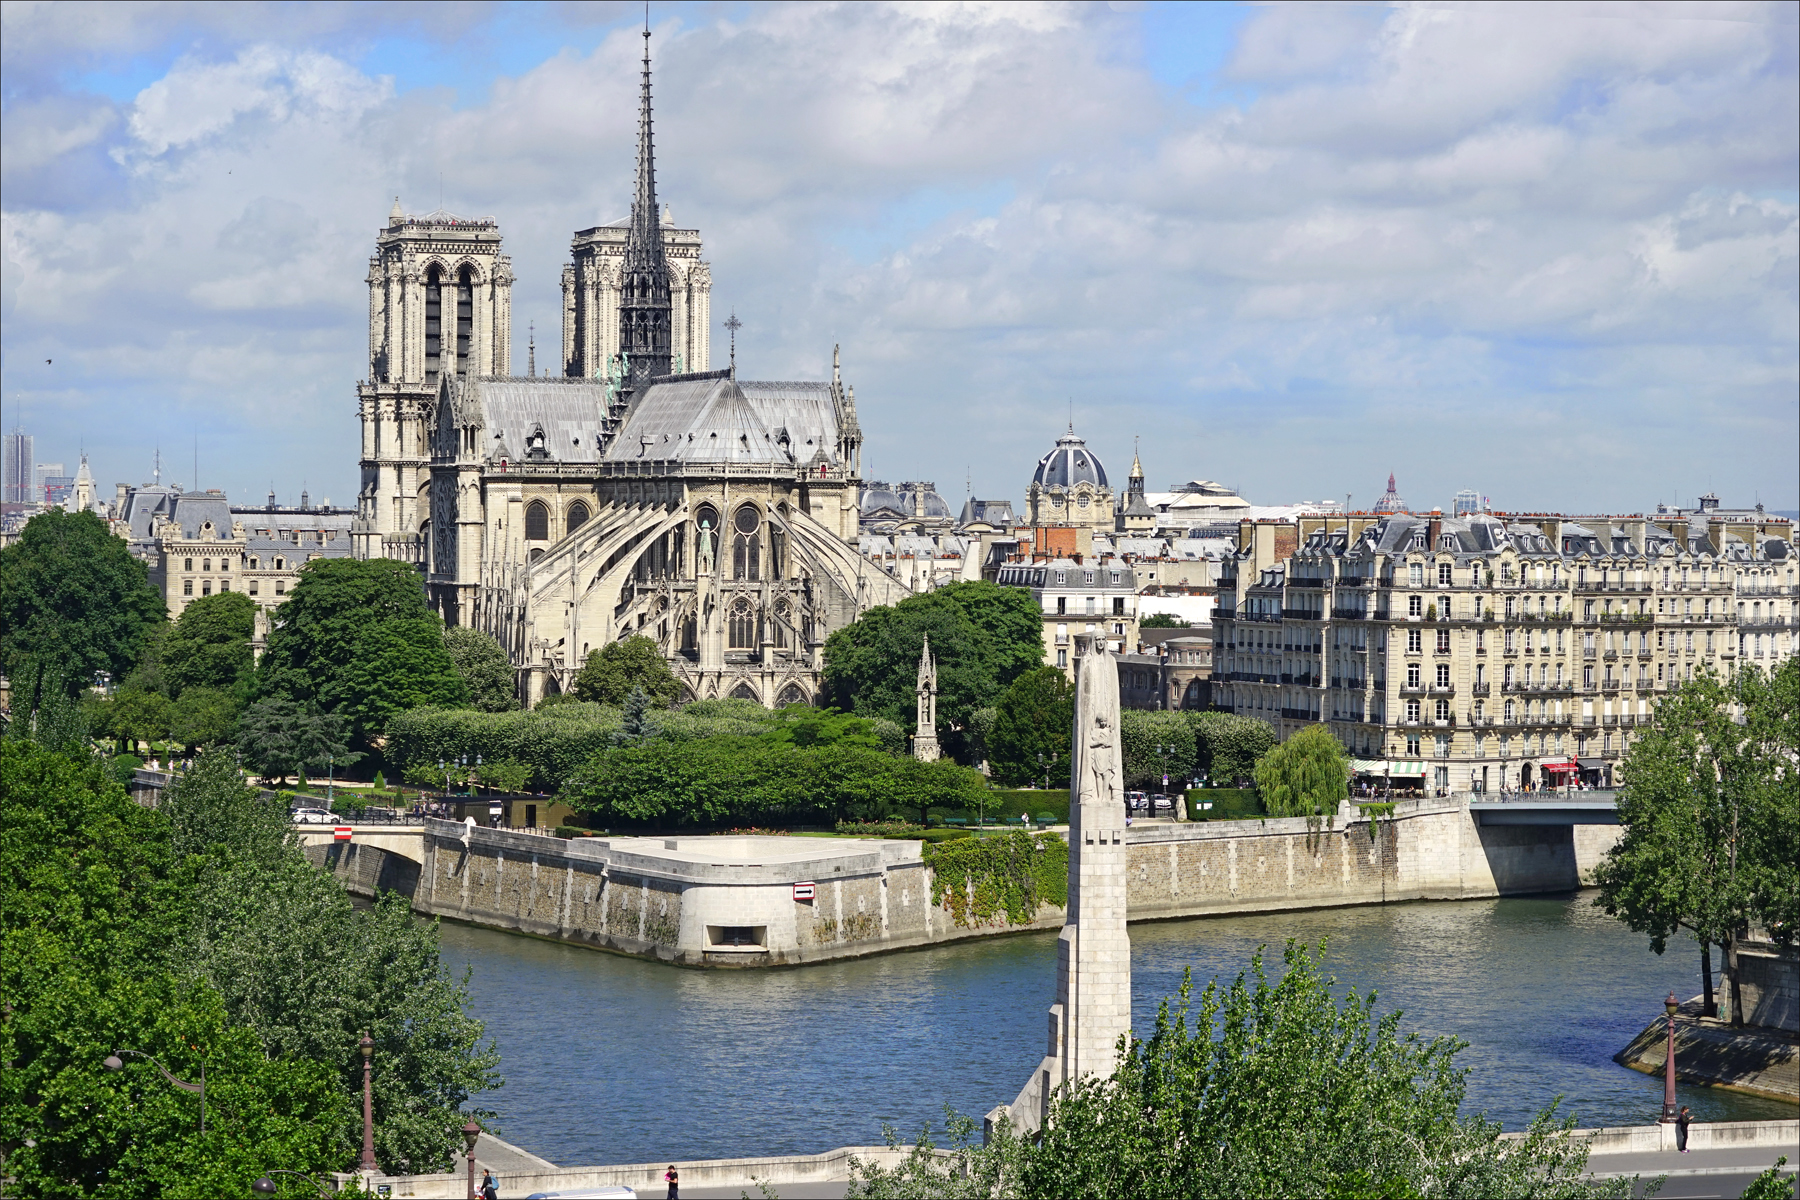 web2-sainte-genevieve-paris-flickr-34391040153_24841bdba0_o.jpg